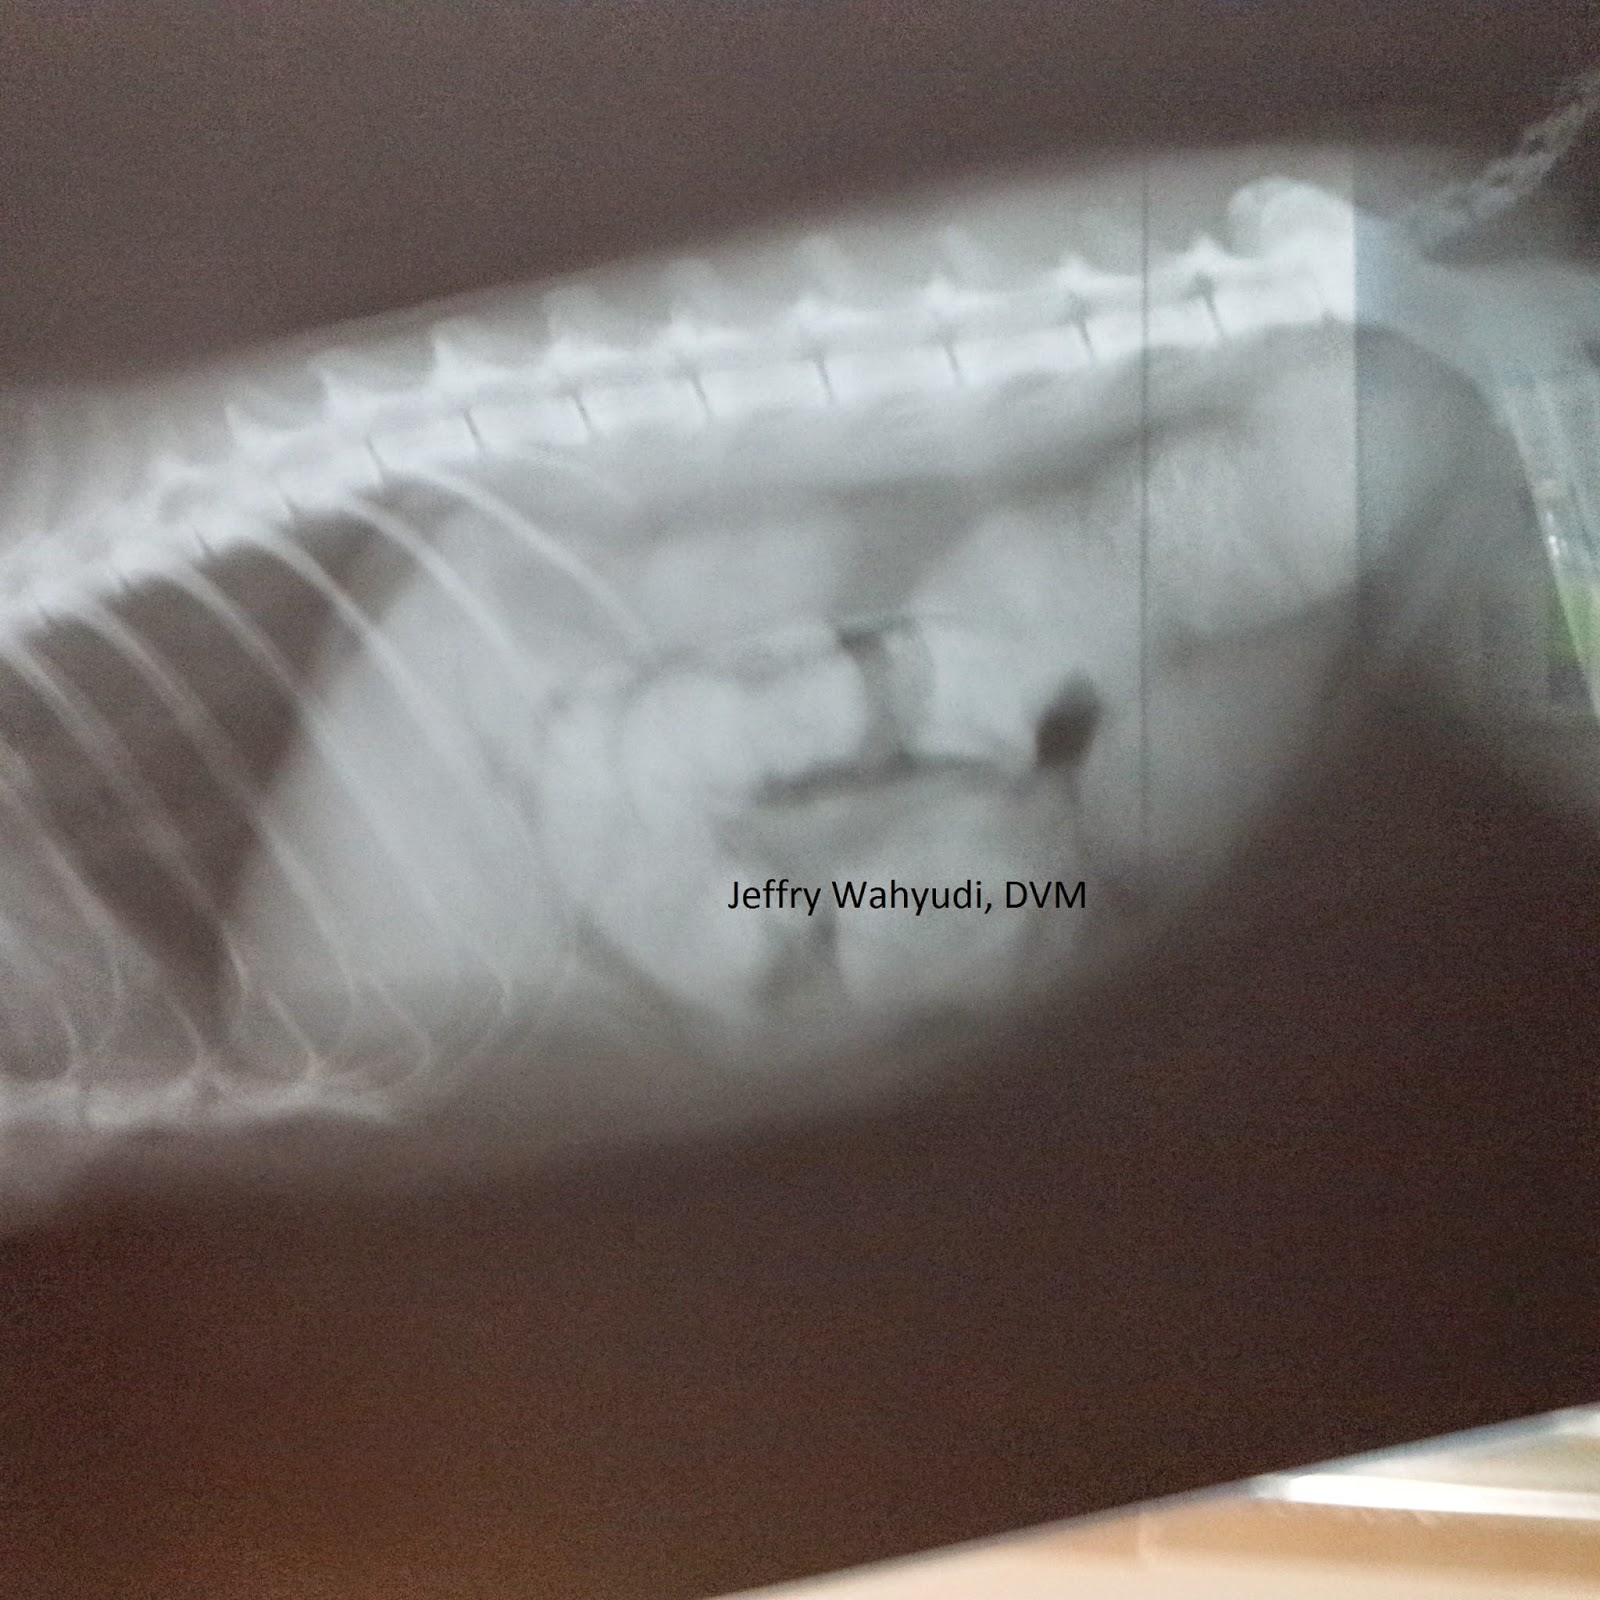 PAWS &CLAWS VET CLINIC: Megacolon in cats